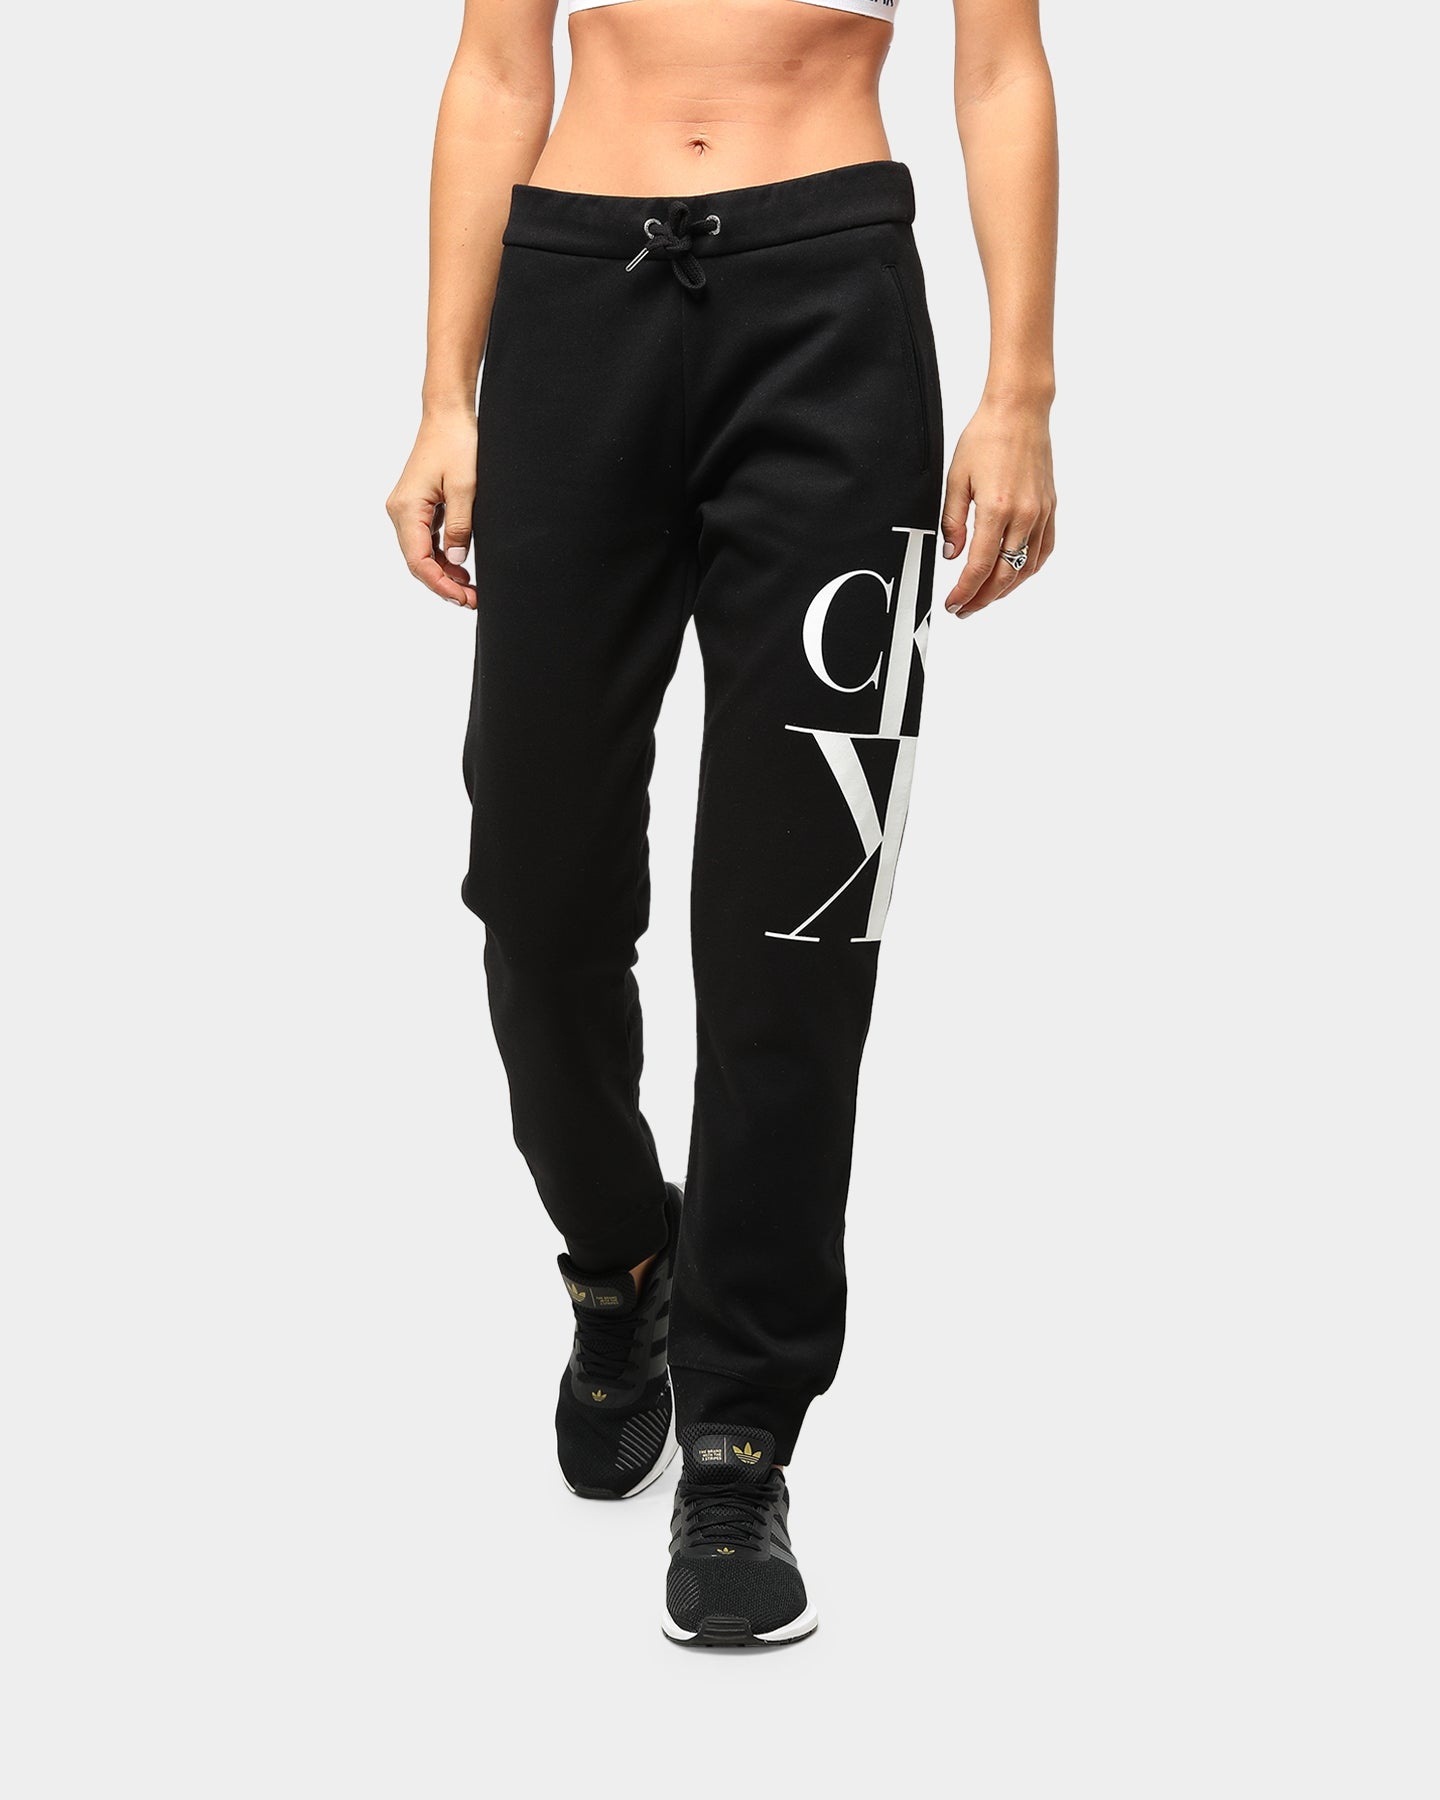 Shop Womens Pants Jeans, Track pants, Joggers, Cargos and